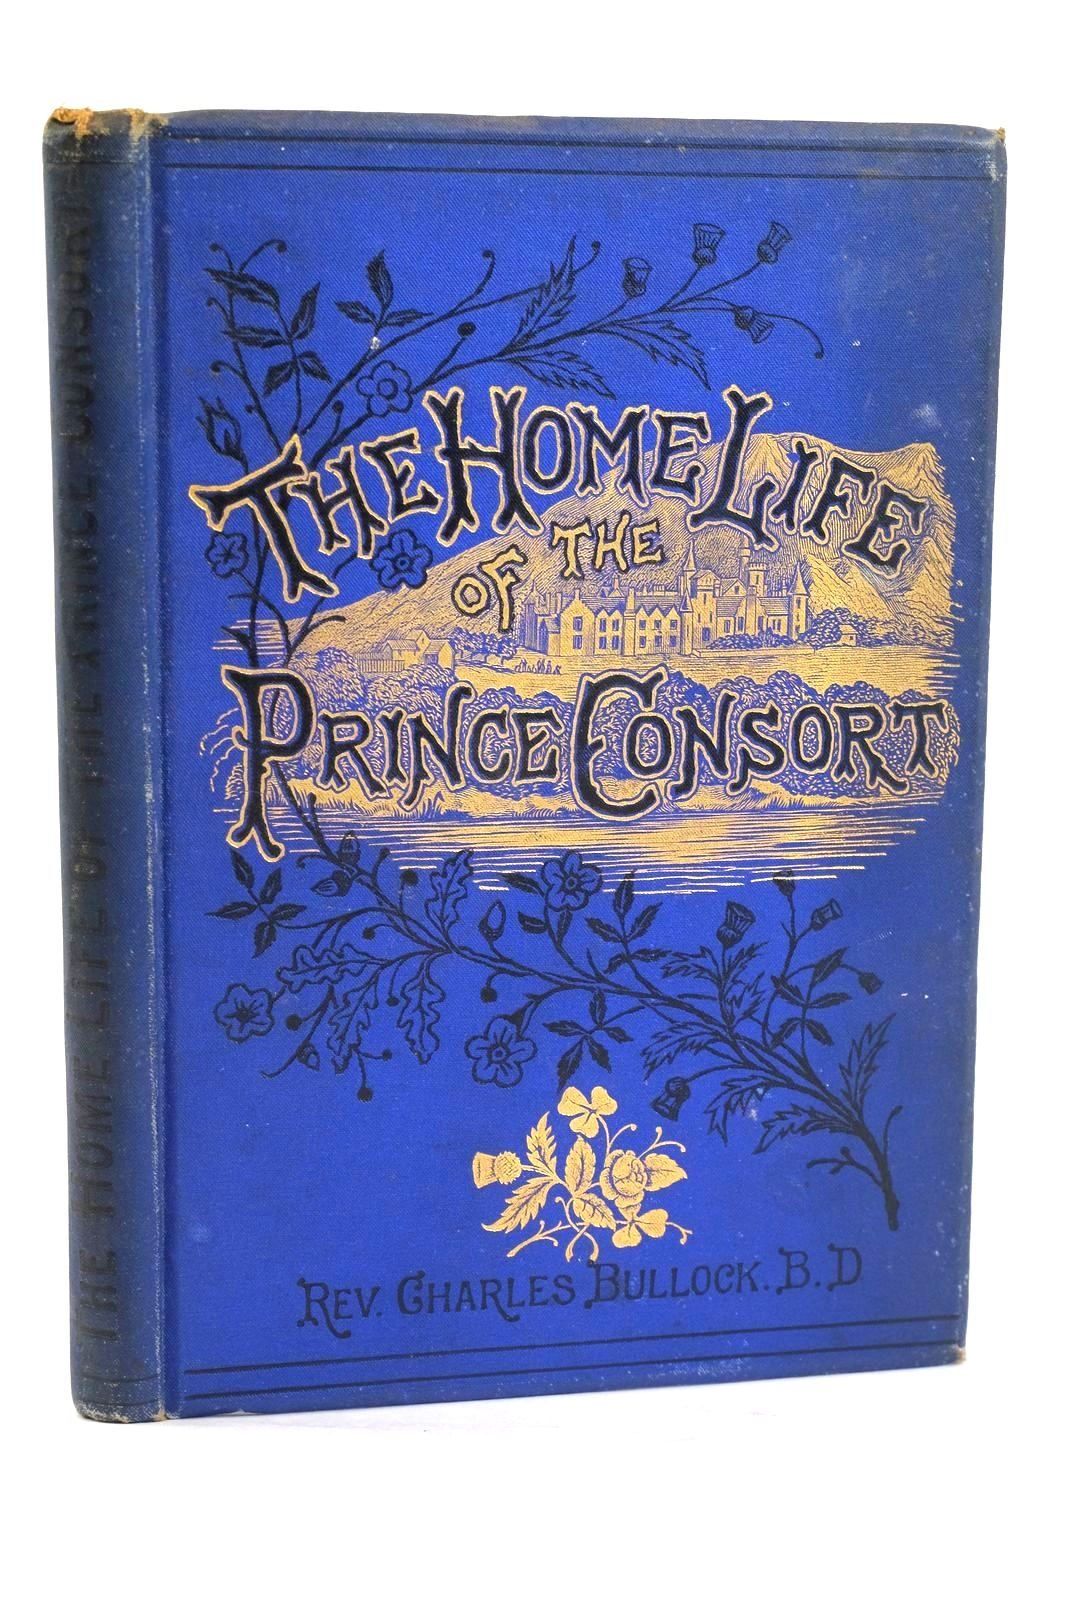 Photo of THE HOME LIFE OF THE PRINCE CONSORT- Stock Number: 1319674